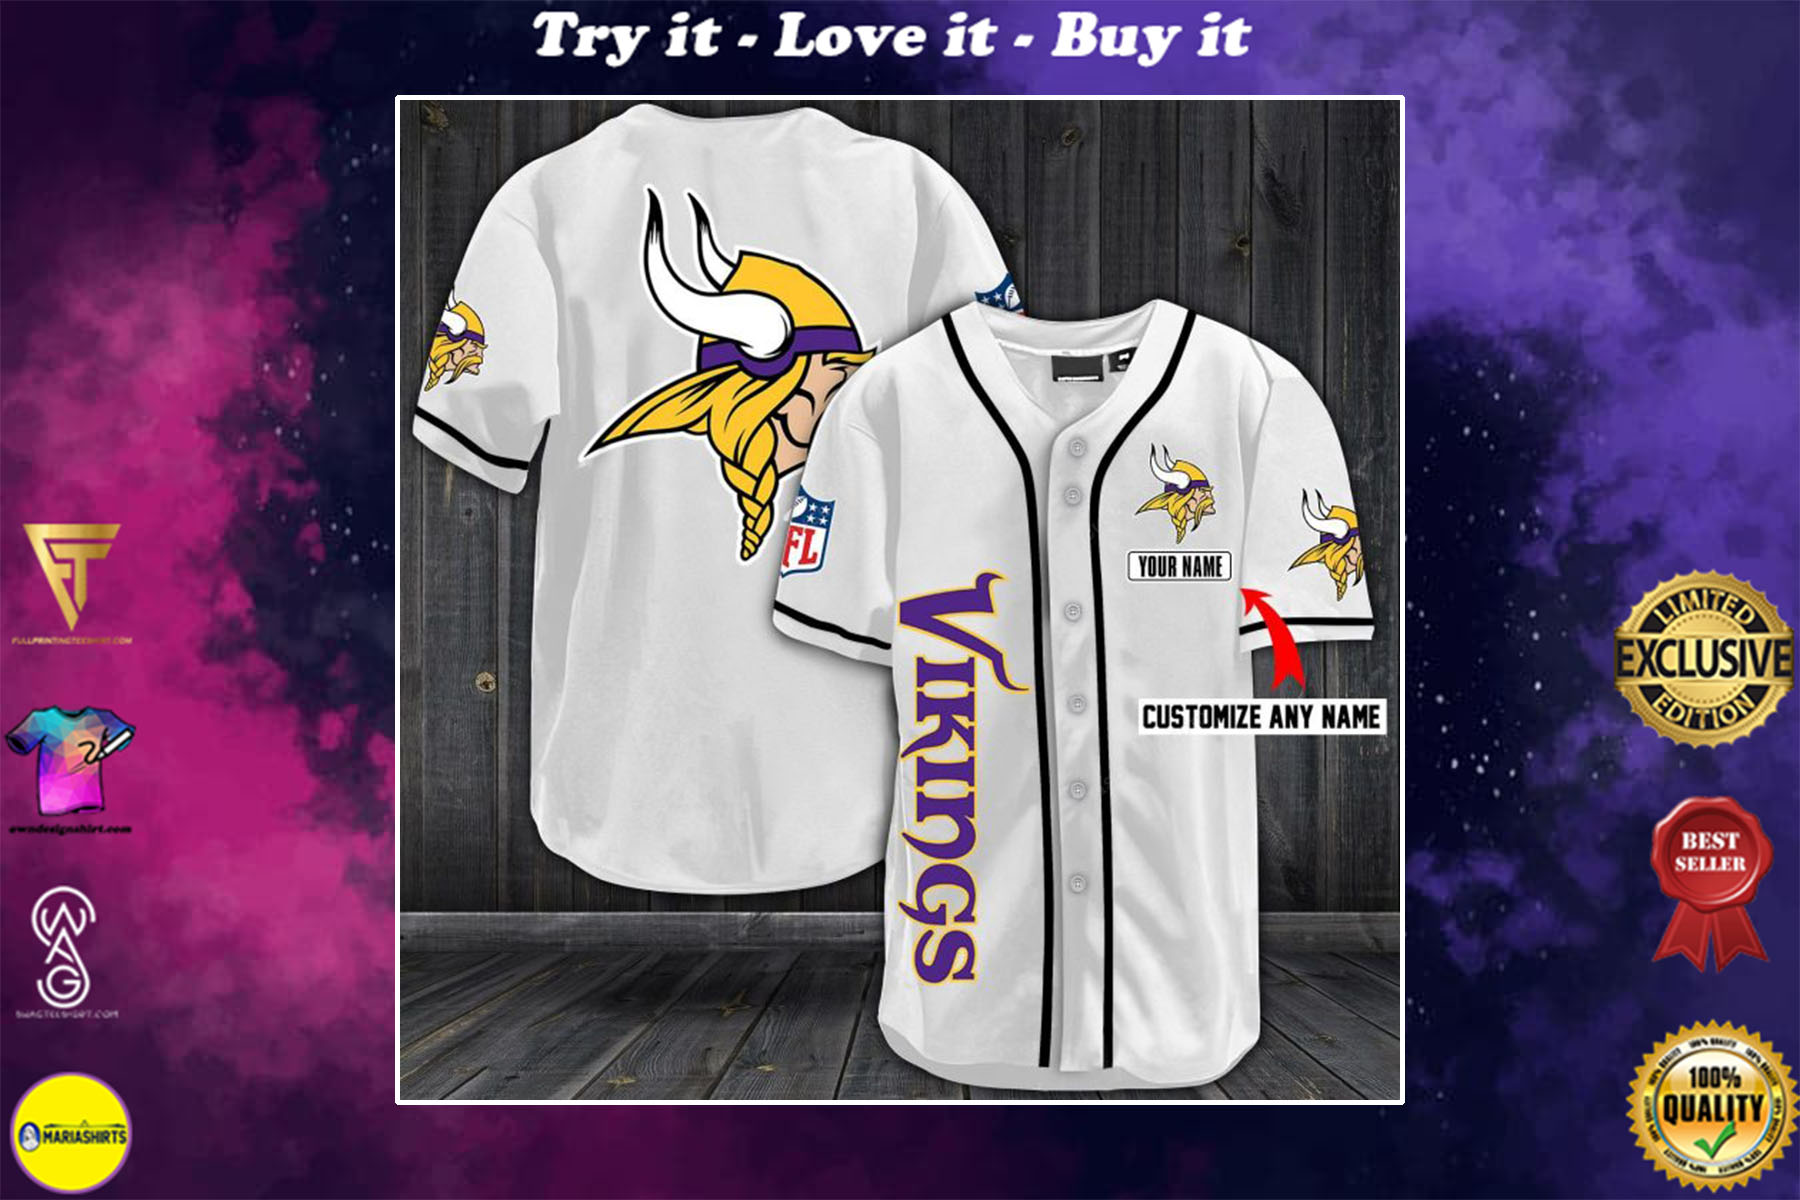 [special edition] personalized name jersey minnesota vikings full printing shirt - maria